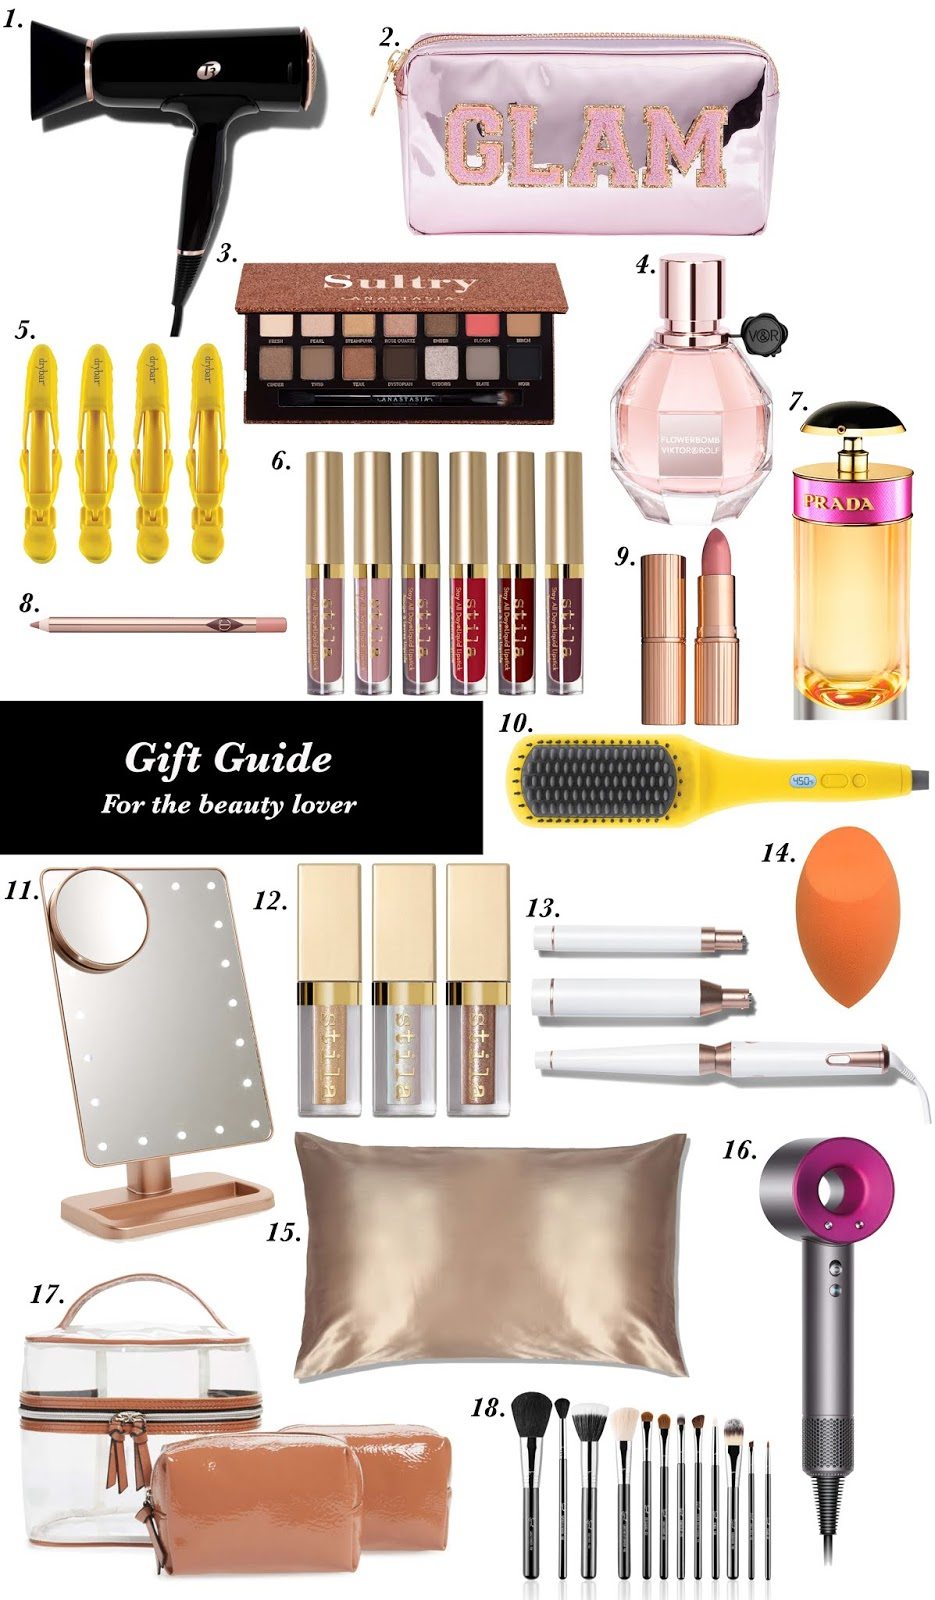 Gift Guide for the Beauty Lover - Something Delightful Blog